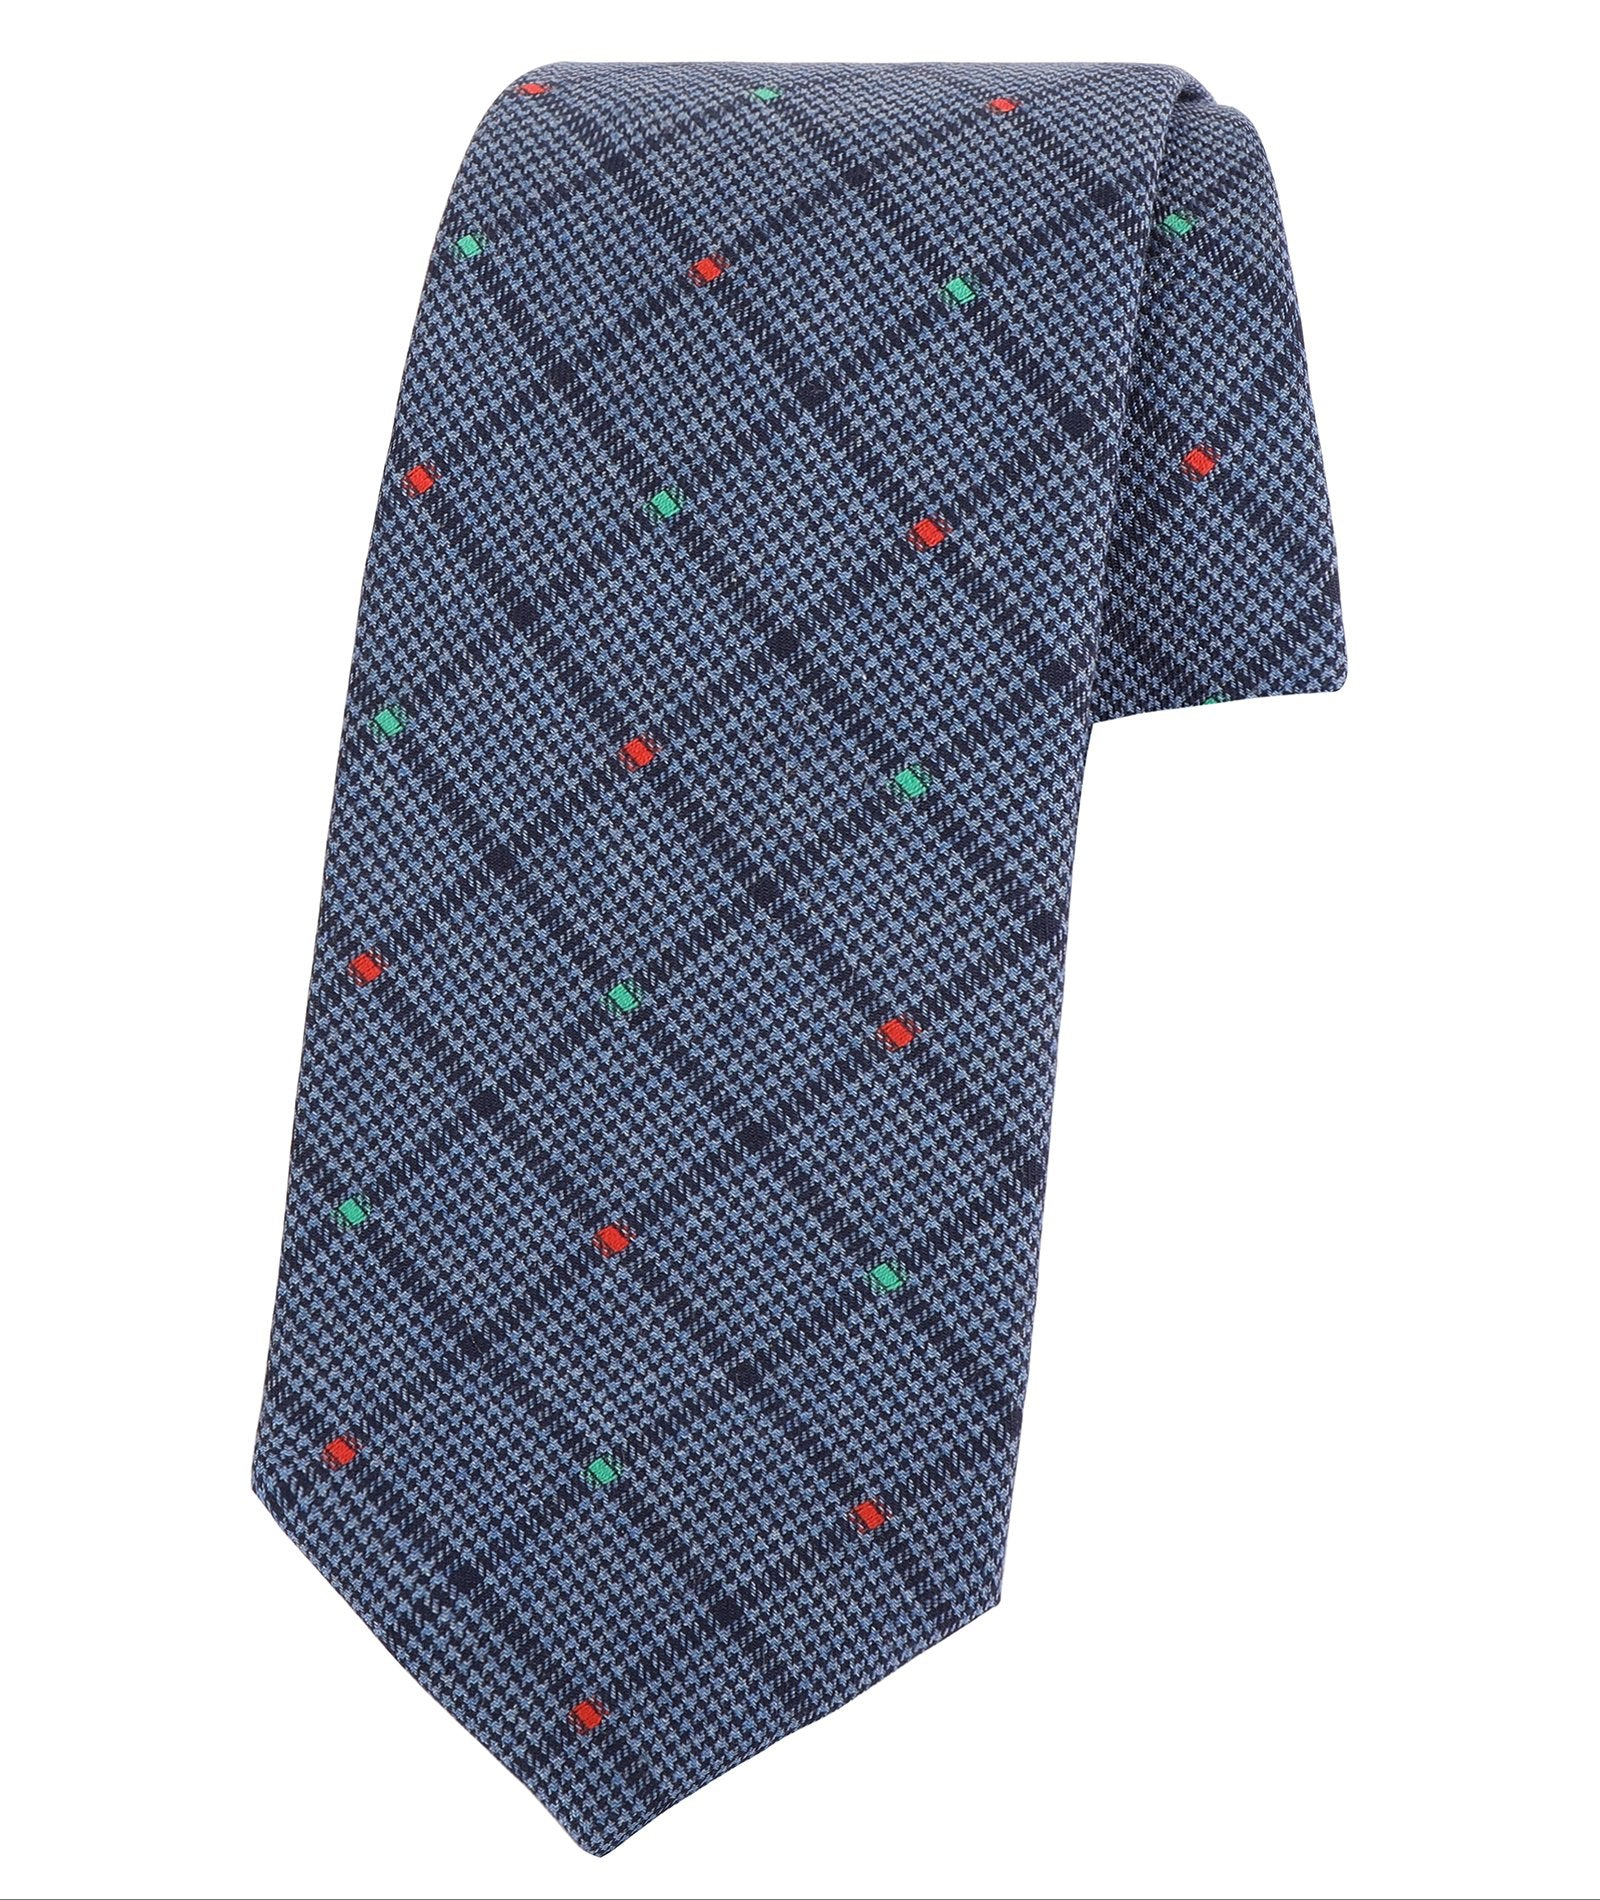 Blue with Red and Green Dots Tie